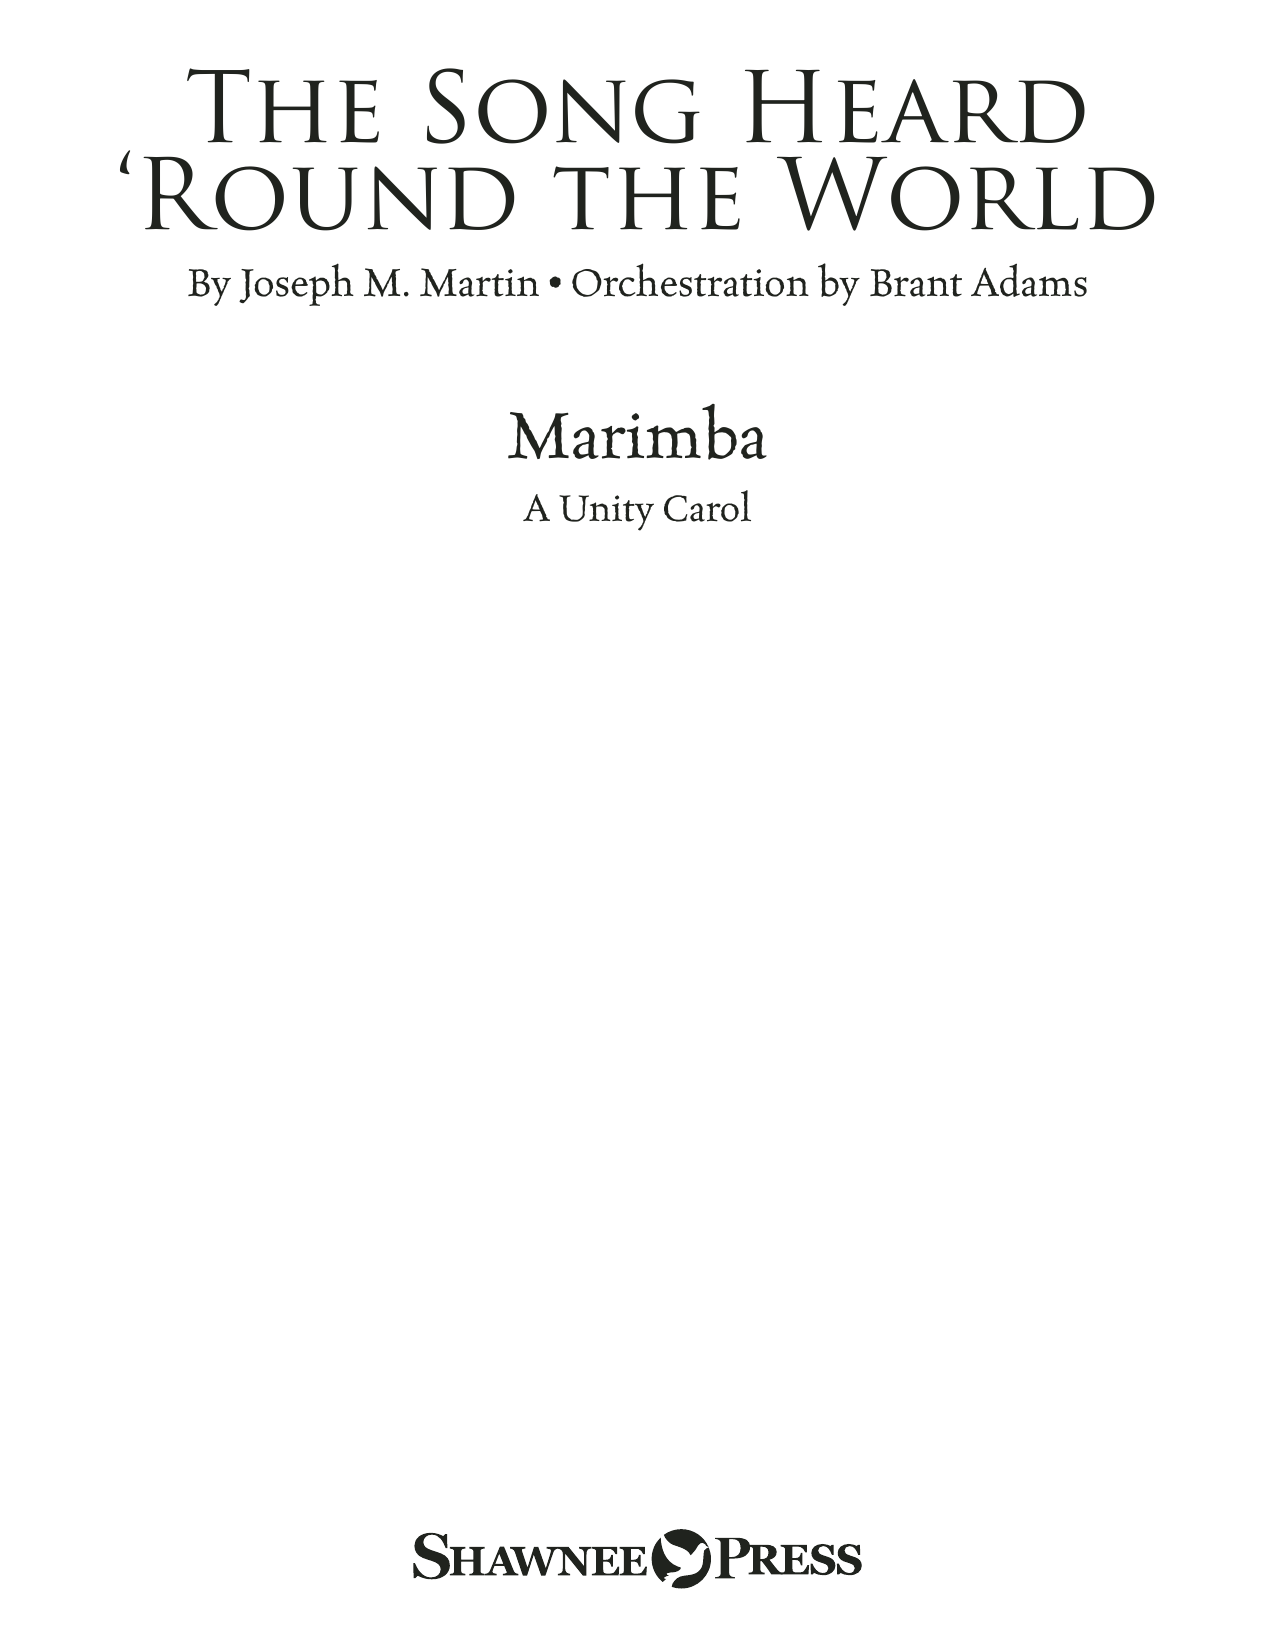 The Song Heard 'Round the World - Marimba Sheet Music